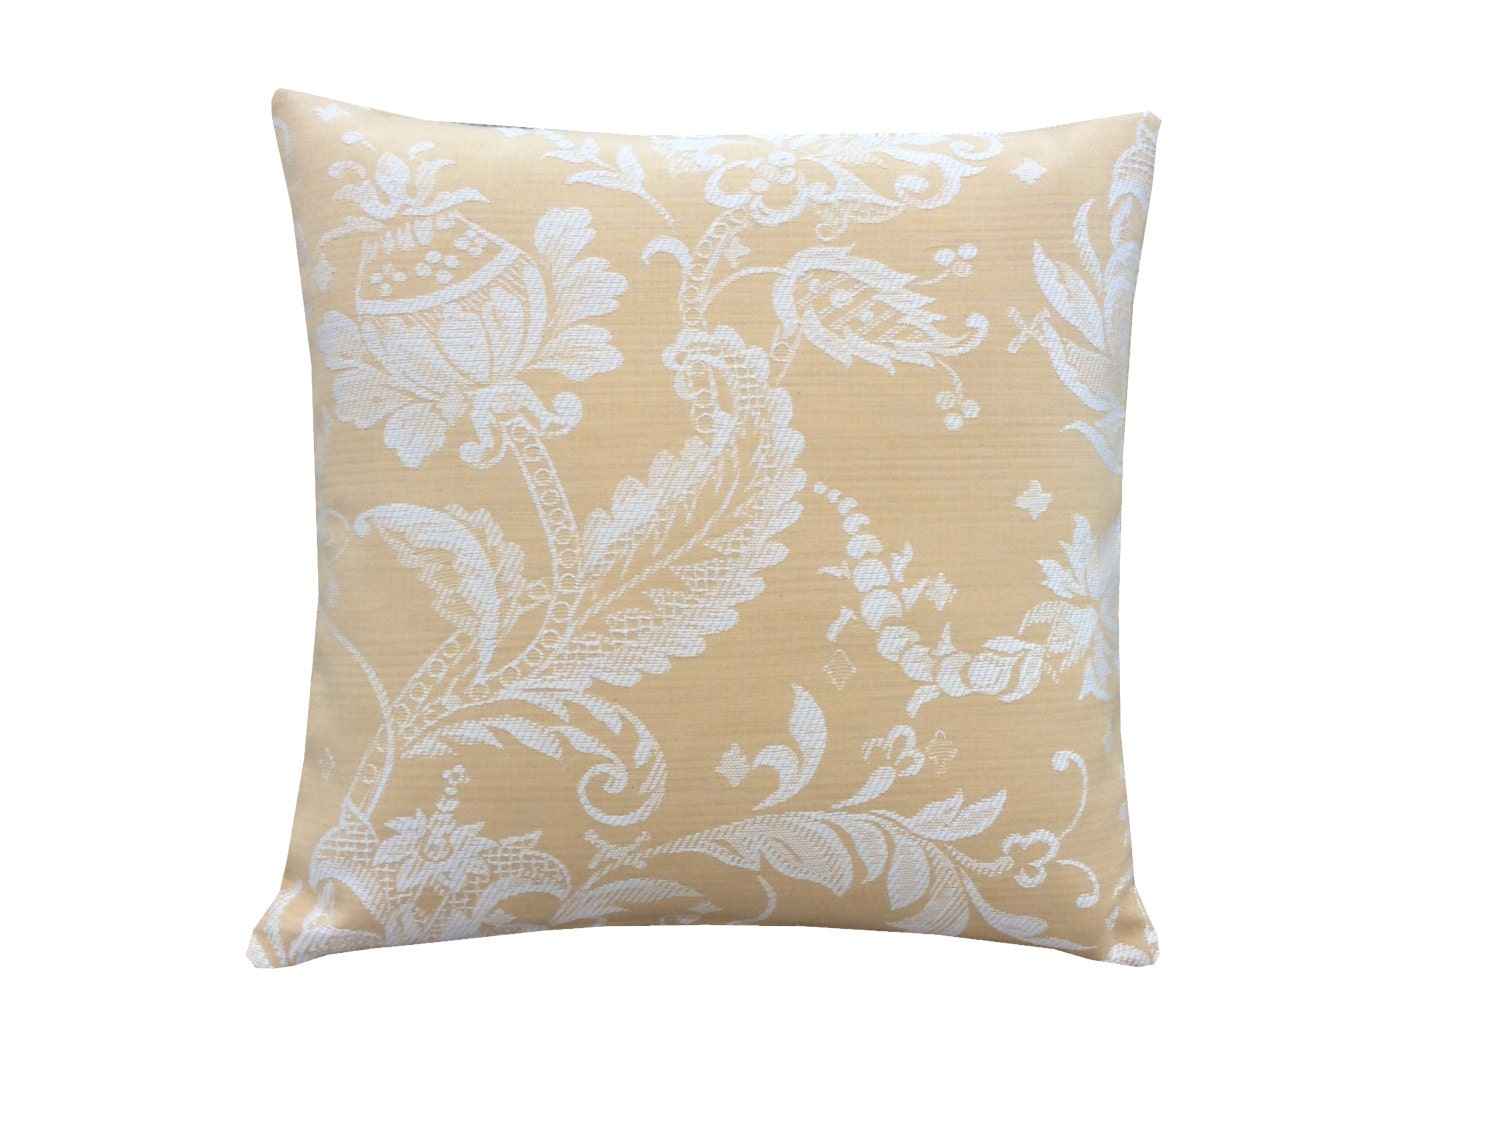 Stunning hand made in the UK cushion cover Pillow case Laura Ashley fabric cream ivory yellow gold mustard colour Home bedroom sofa lounge